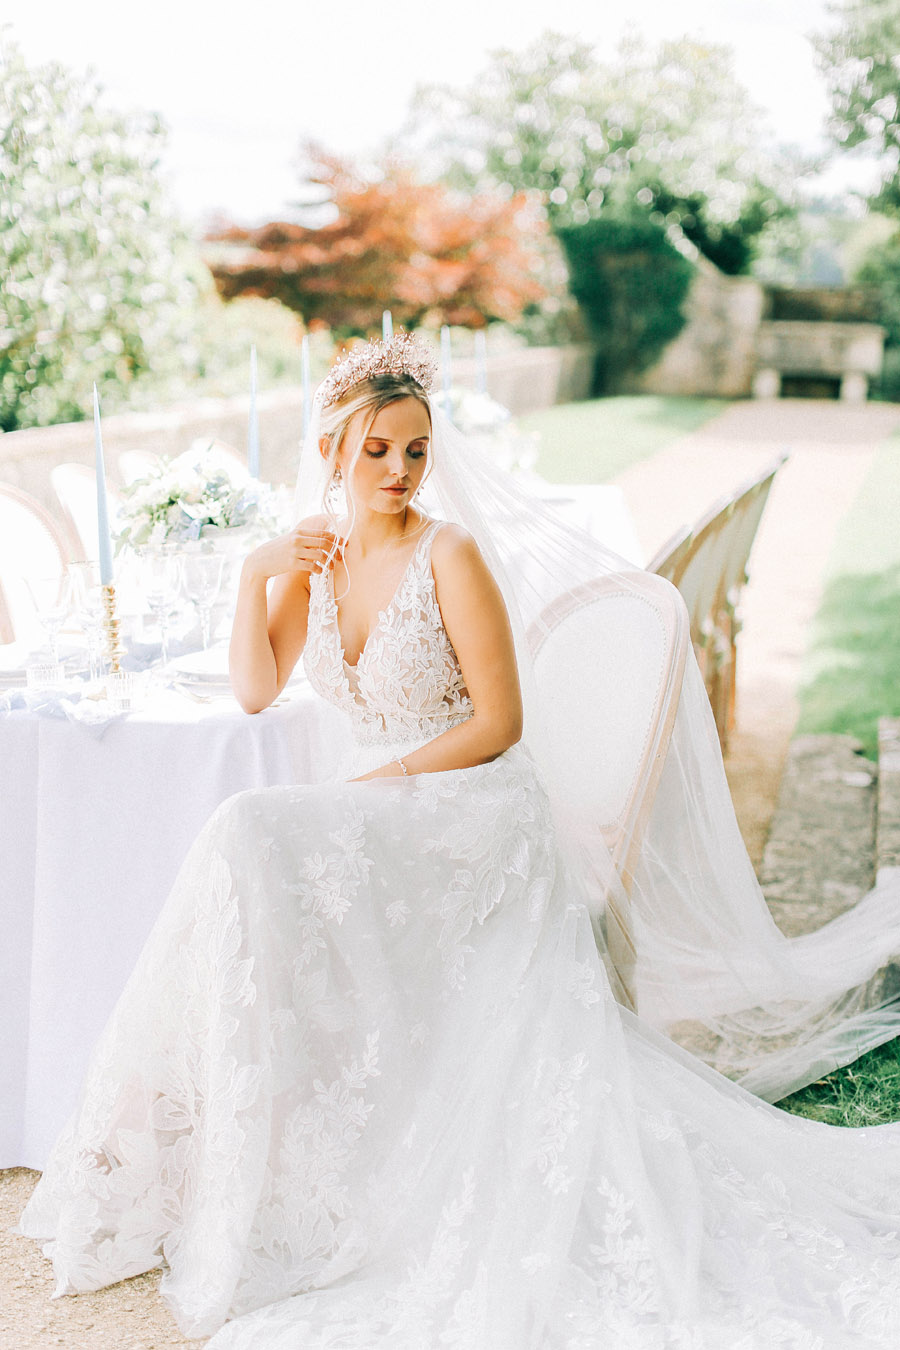 Enchanted Fairytale inspired shoot at Hamswell House, photography credit Charlotte Wise, wedding planner Lucy Ann Reid (16)